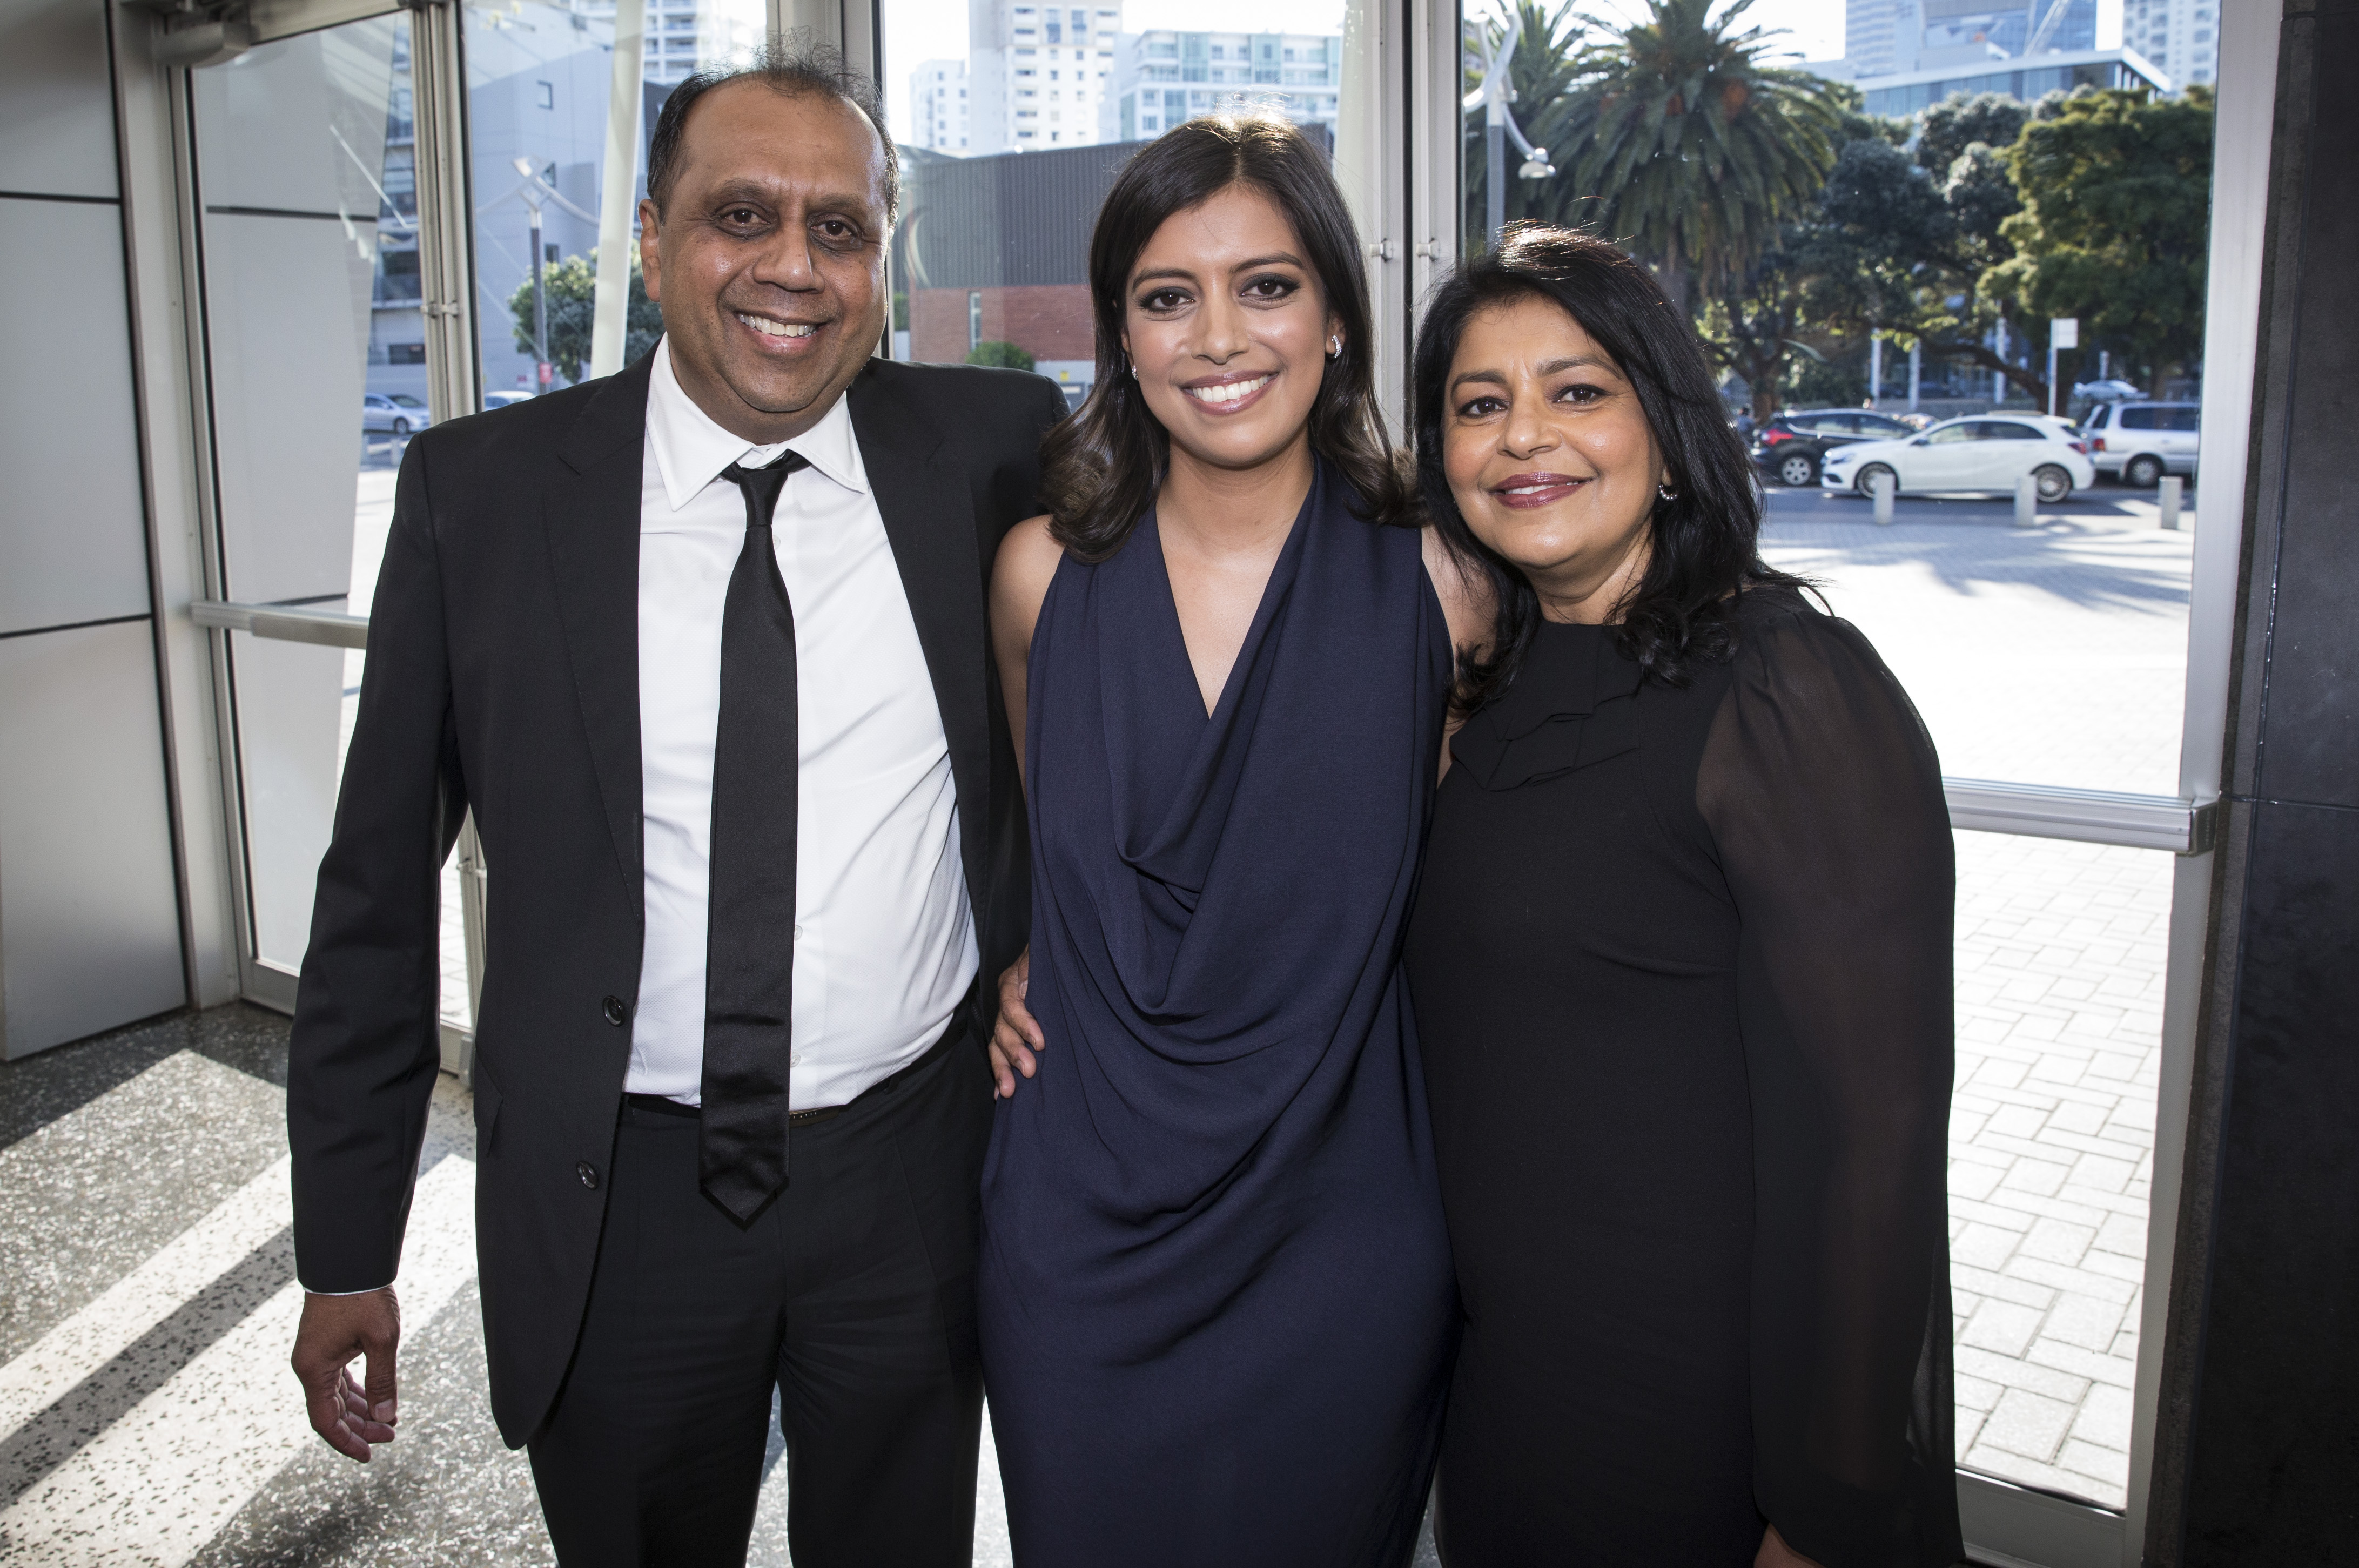 Deloitte Top 200: Young Executive of the Year - Komal Mistry